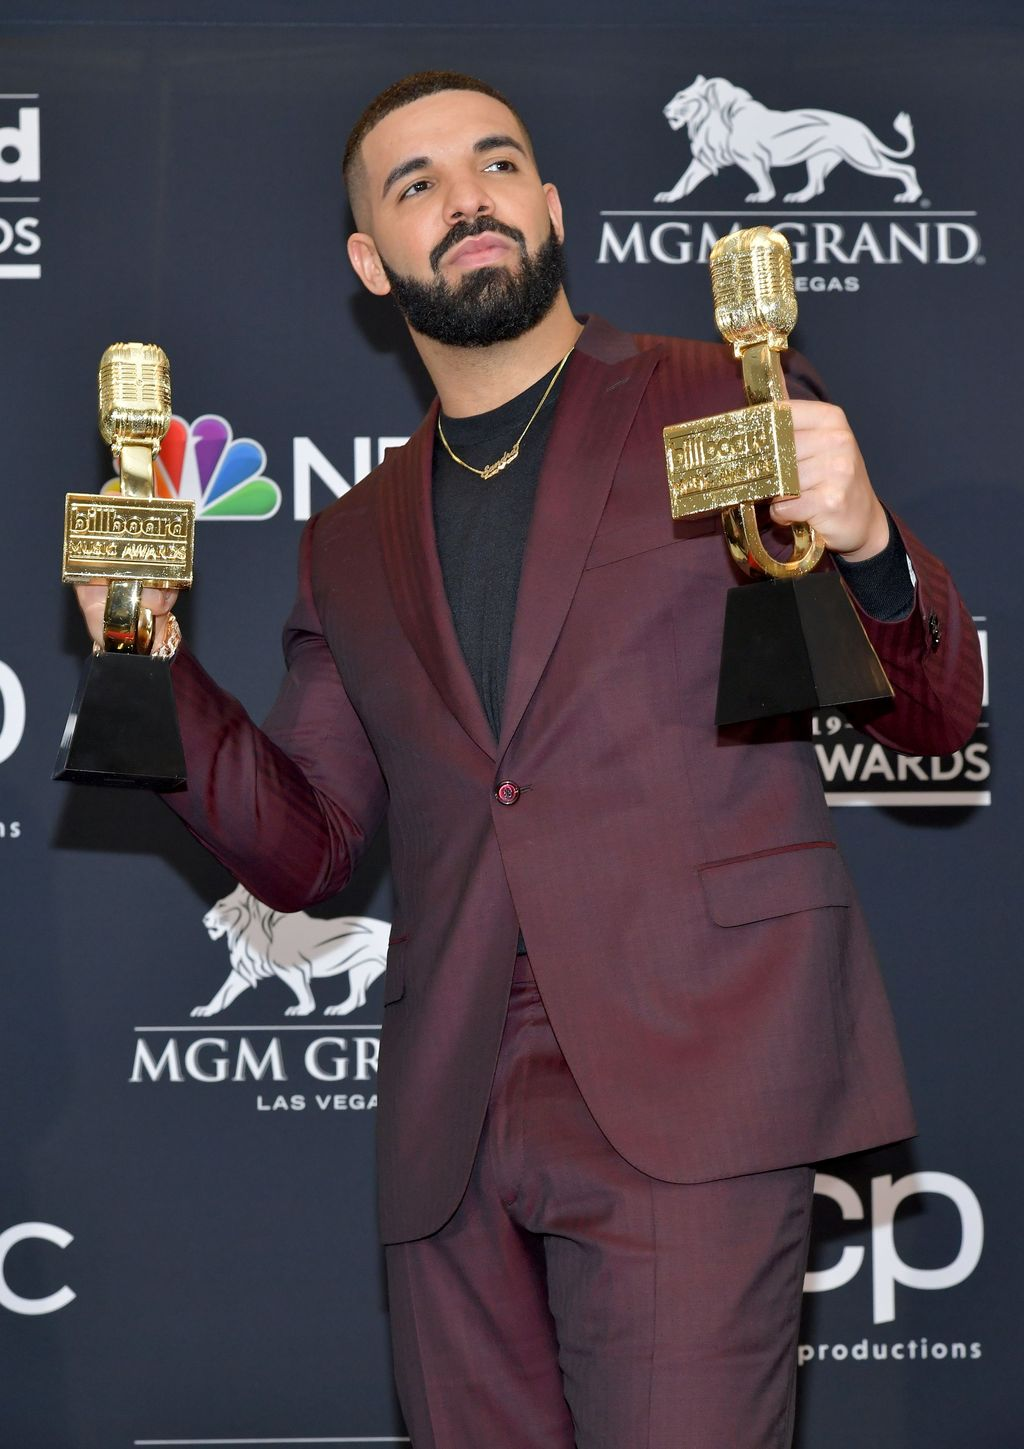 """LAS VEGAS, NEVADA - MAY 01: Drake poses with the awards for Top Artist, Top Male Artist, Top Billboard 200 Album for """"Scorpion"""", Top Billboard 200 Artist, Top Hot 100 Artist, Top Streaming Songs Artist, Top Song Sales Artist, Top Rap Artist, Top Rap Male Artist in the press room during the 2019 Billboard Music Awards at MGM Grand Garden Arena on May 01, 2019 in Las Vegas, Nevada. (Photo by Amy Sussman/Getty Images for dcp)"""